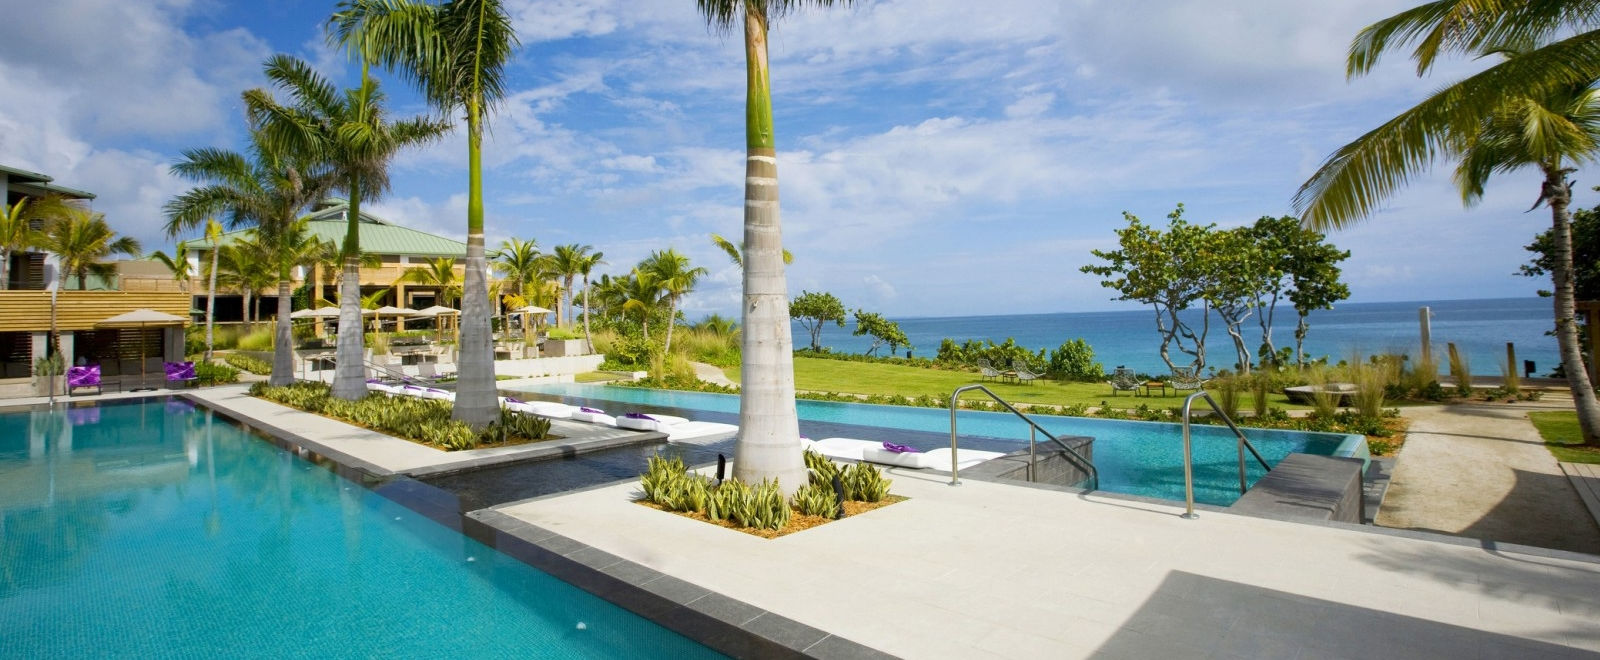 W Retreat & Spa, Vieques Island - Pool